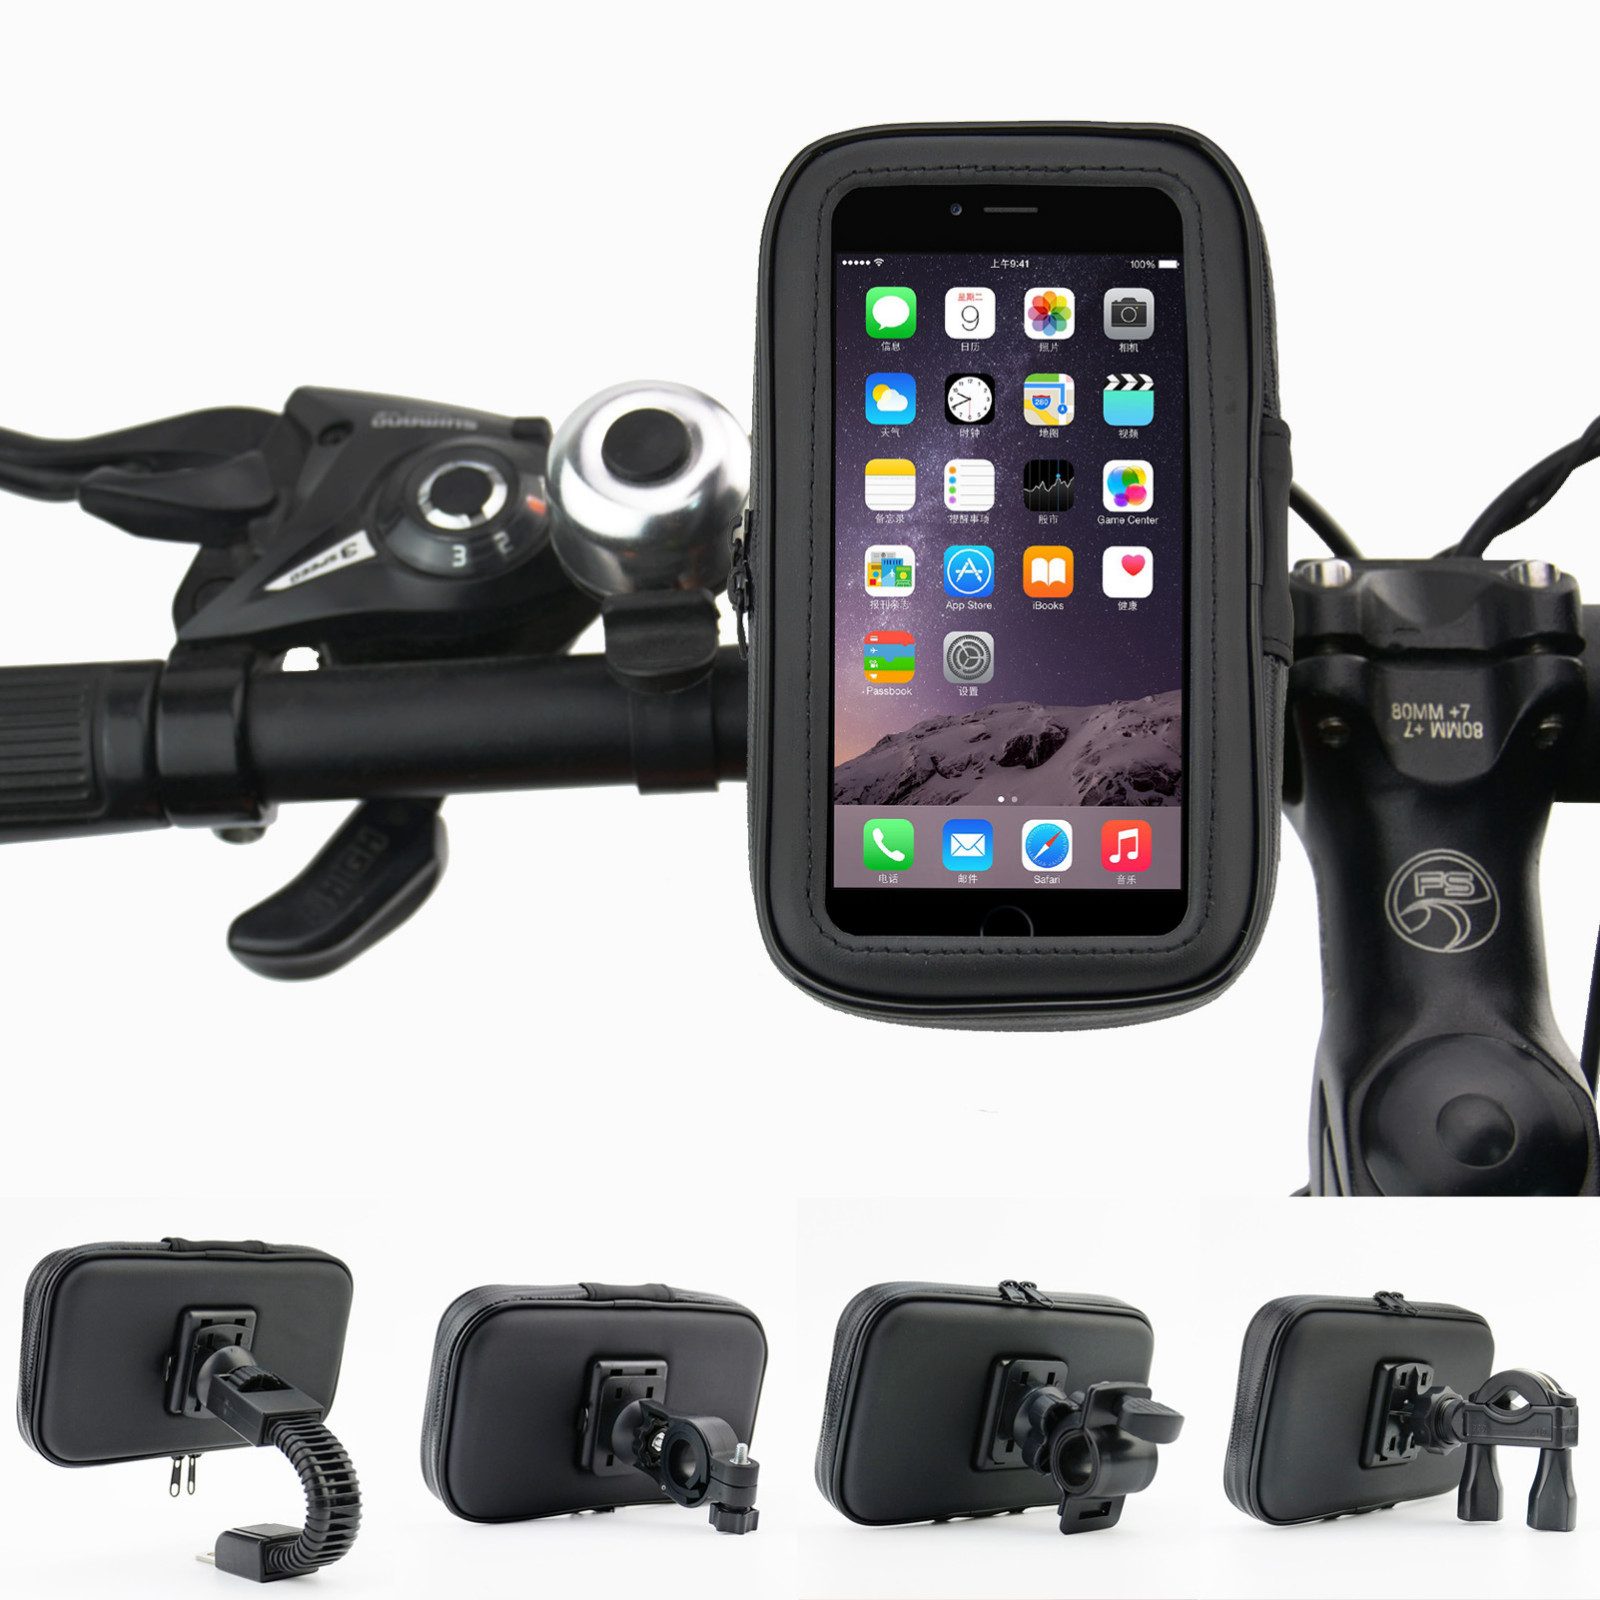 <font><b>Bicycle</b></font> Phone <font><b>Holder</b></font> Waterproof Universal Phone <font><b>Holder</b></font> For Bike <font><b>Bicycle</b></font> Motorcycle Handlebar Mobile <font><b>Smartphone</b></font> Support image